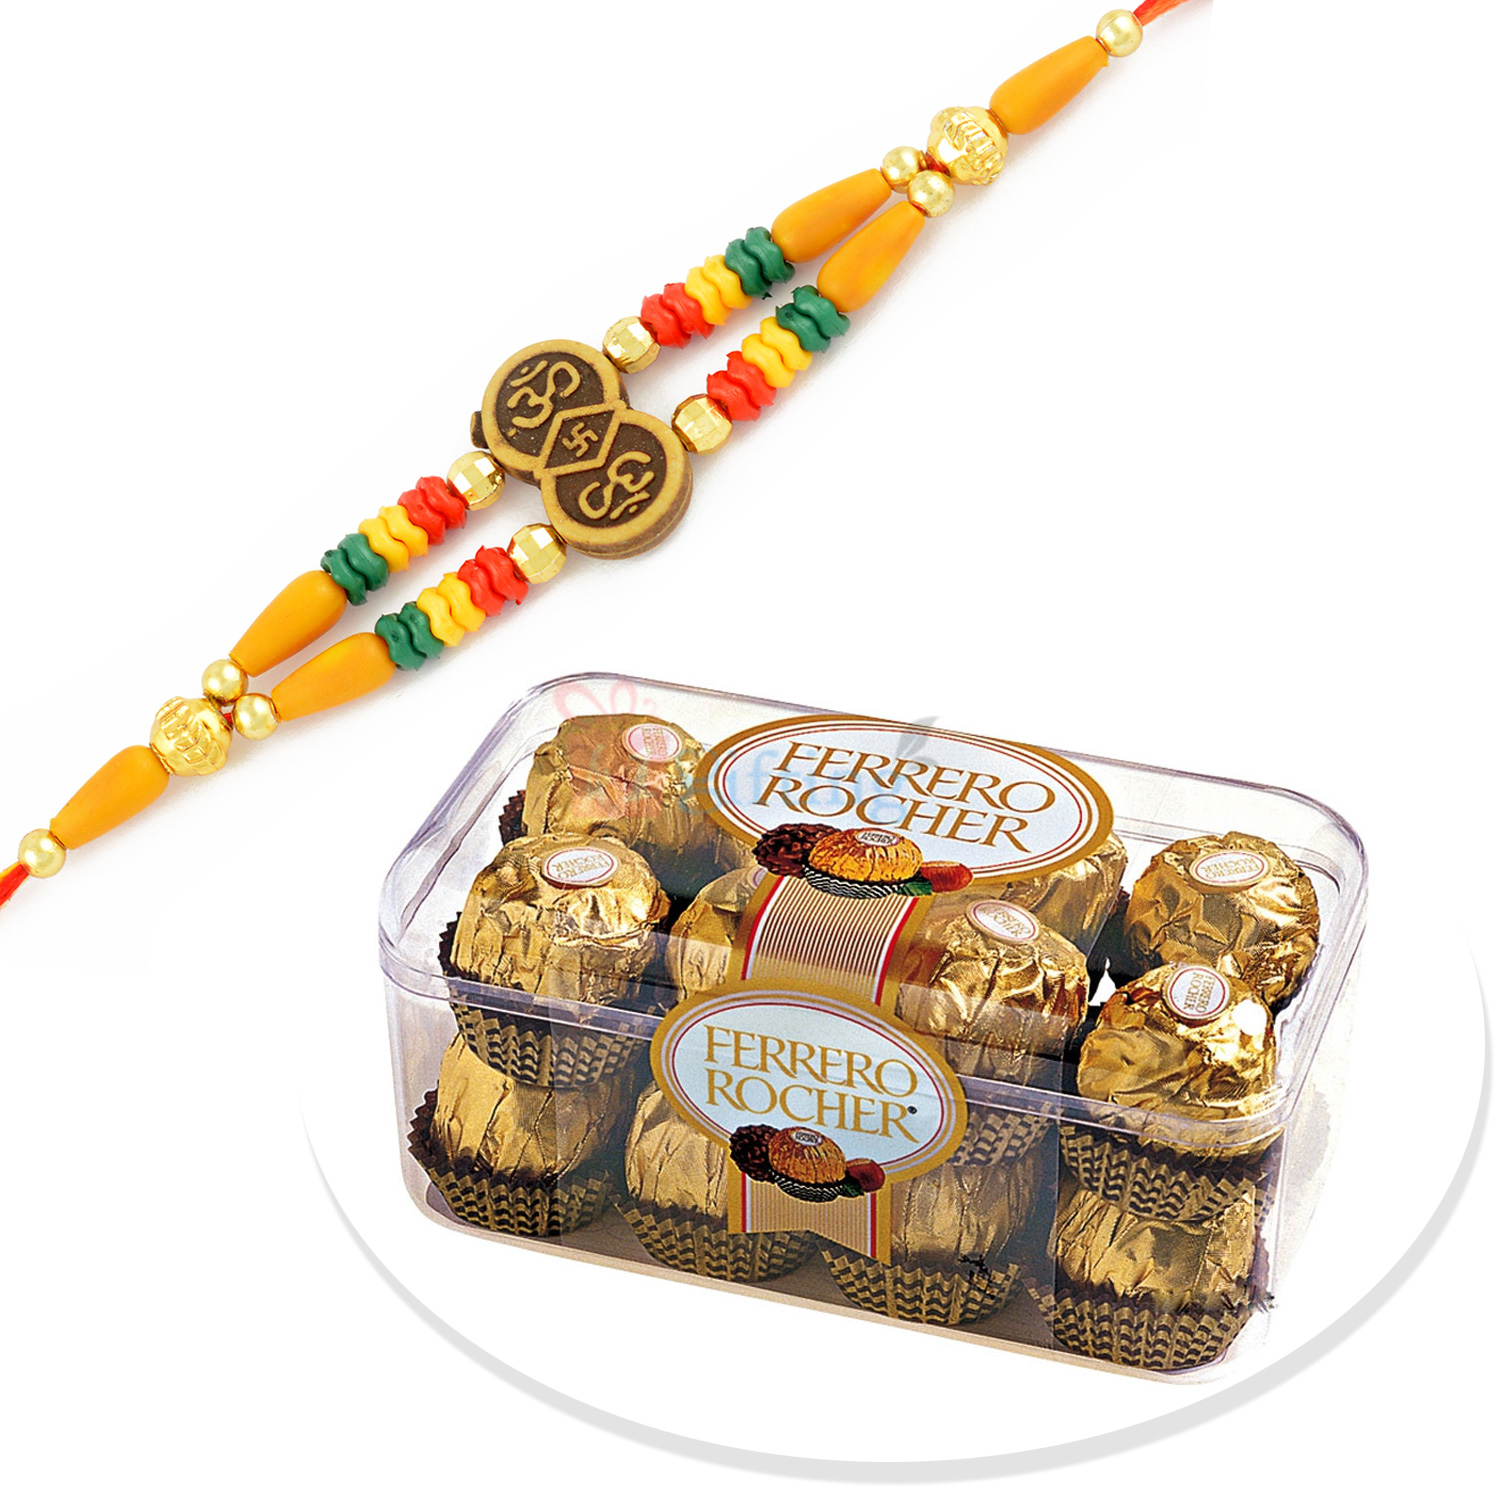 Auspicious OM Beaded Rakhi with 16 Pc Ferrero Rocher Chocolate